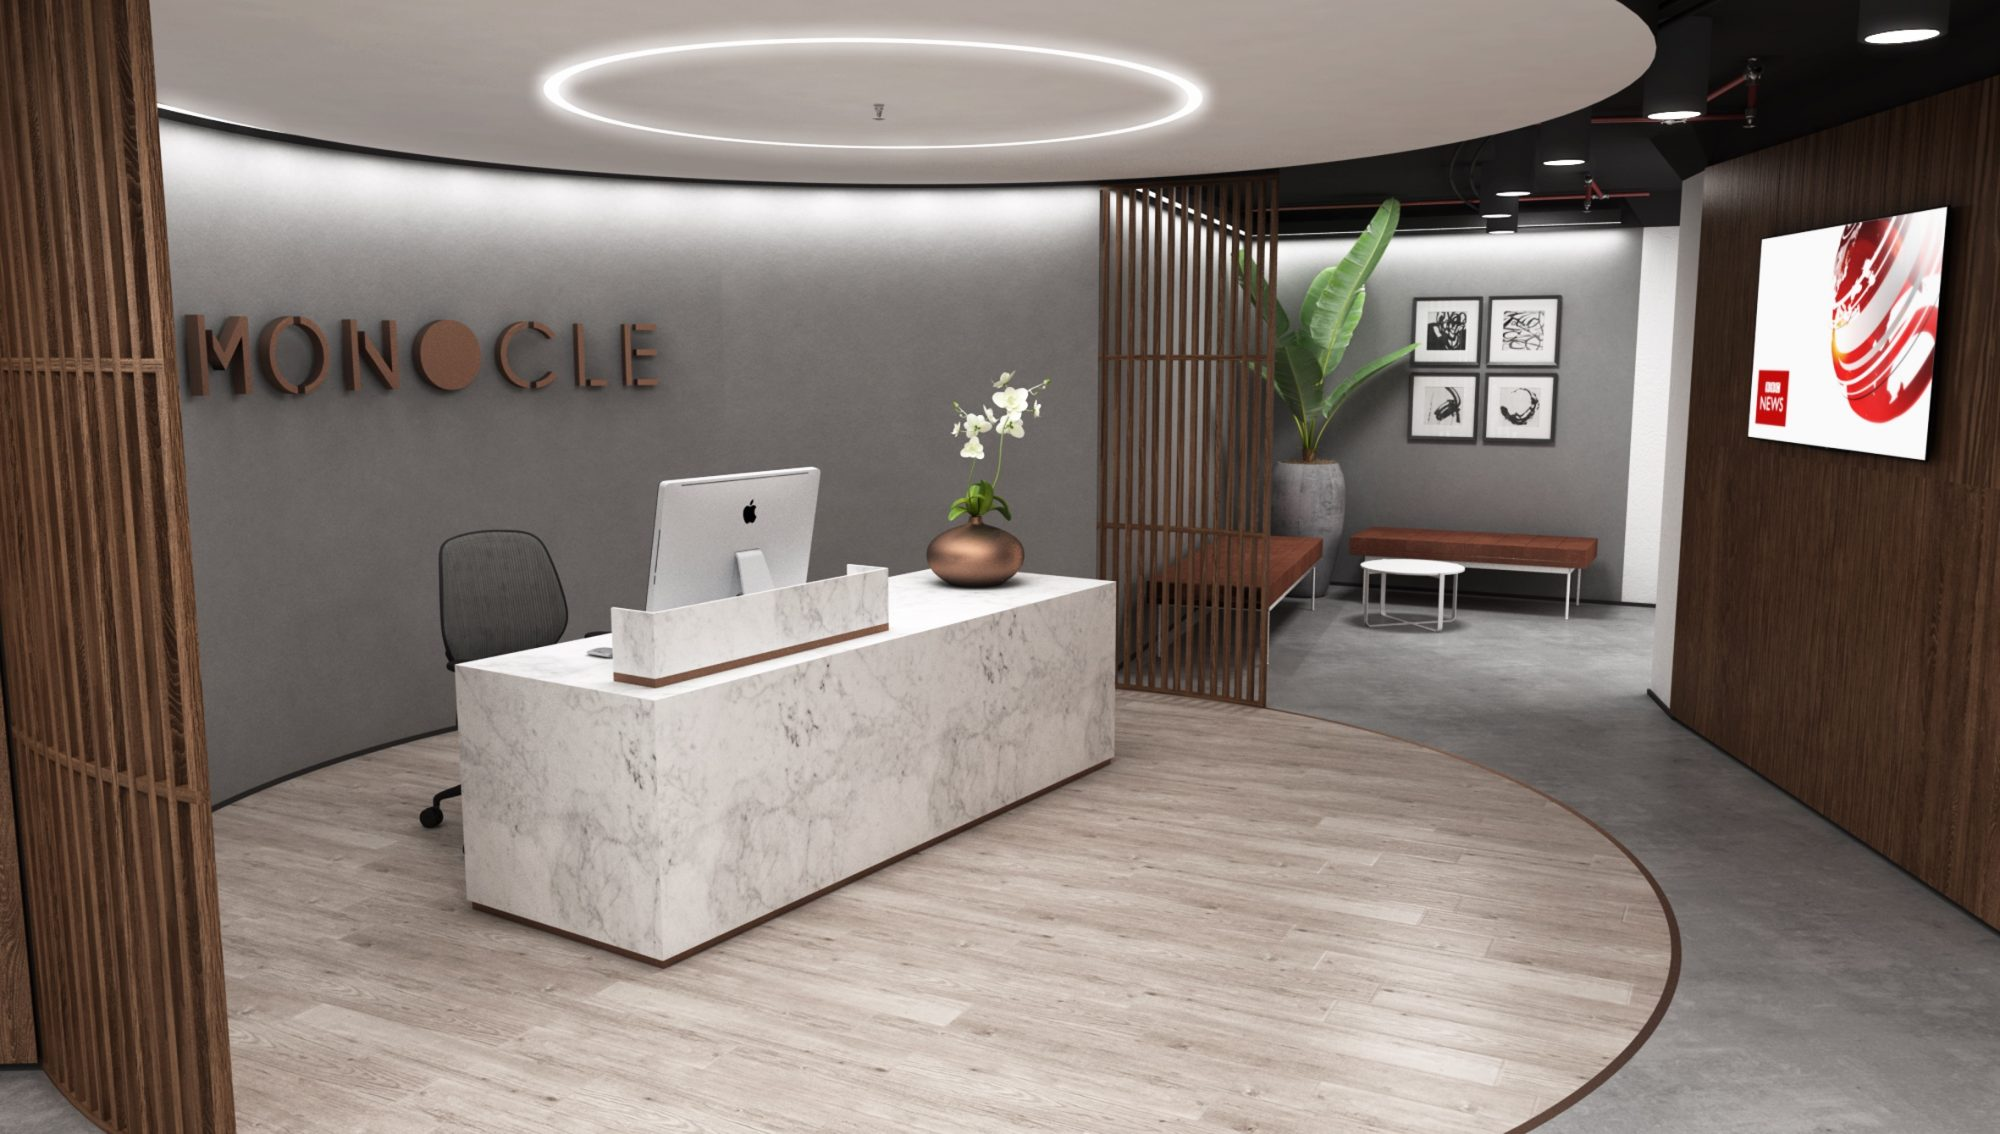 serviced office space hull, business parks hull, hull business centres